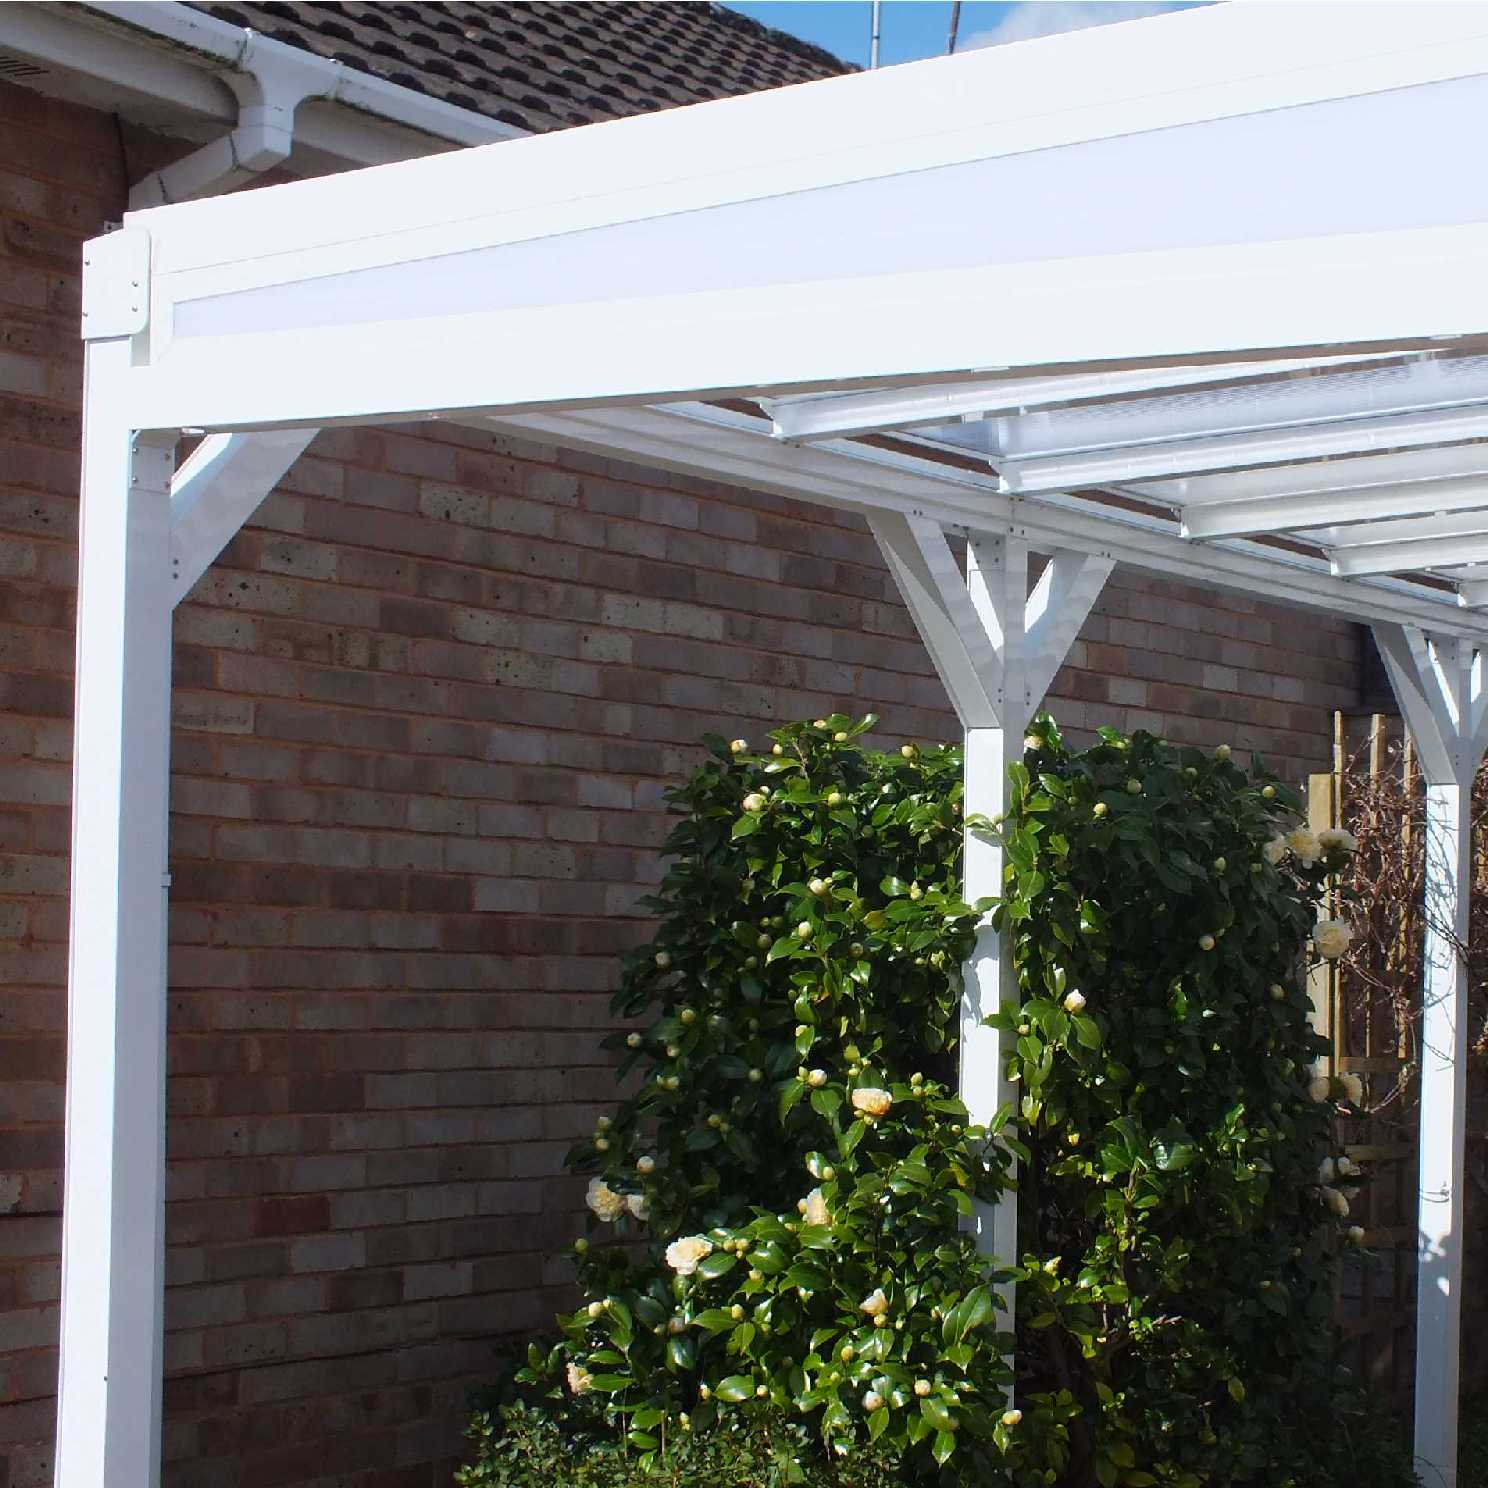 Omega Smart Lean-To Canopy with 16mm Polycarbonate Glazing - 6.0m (W) x 3.0m (P), (3) Supporting Posts from Omega Build